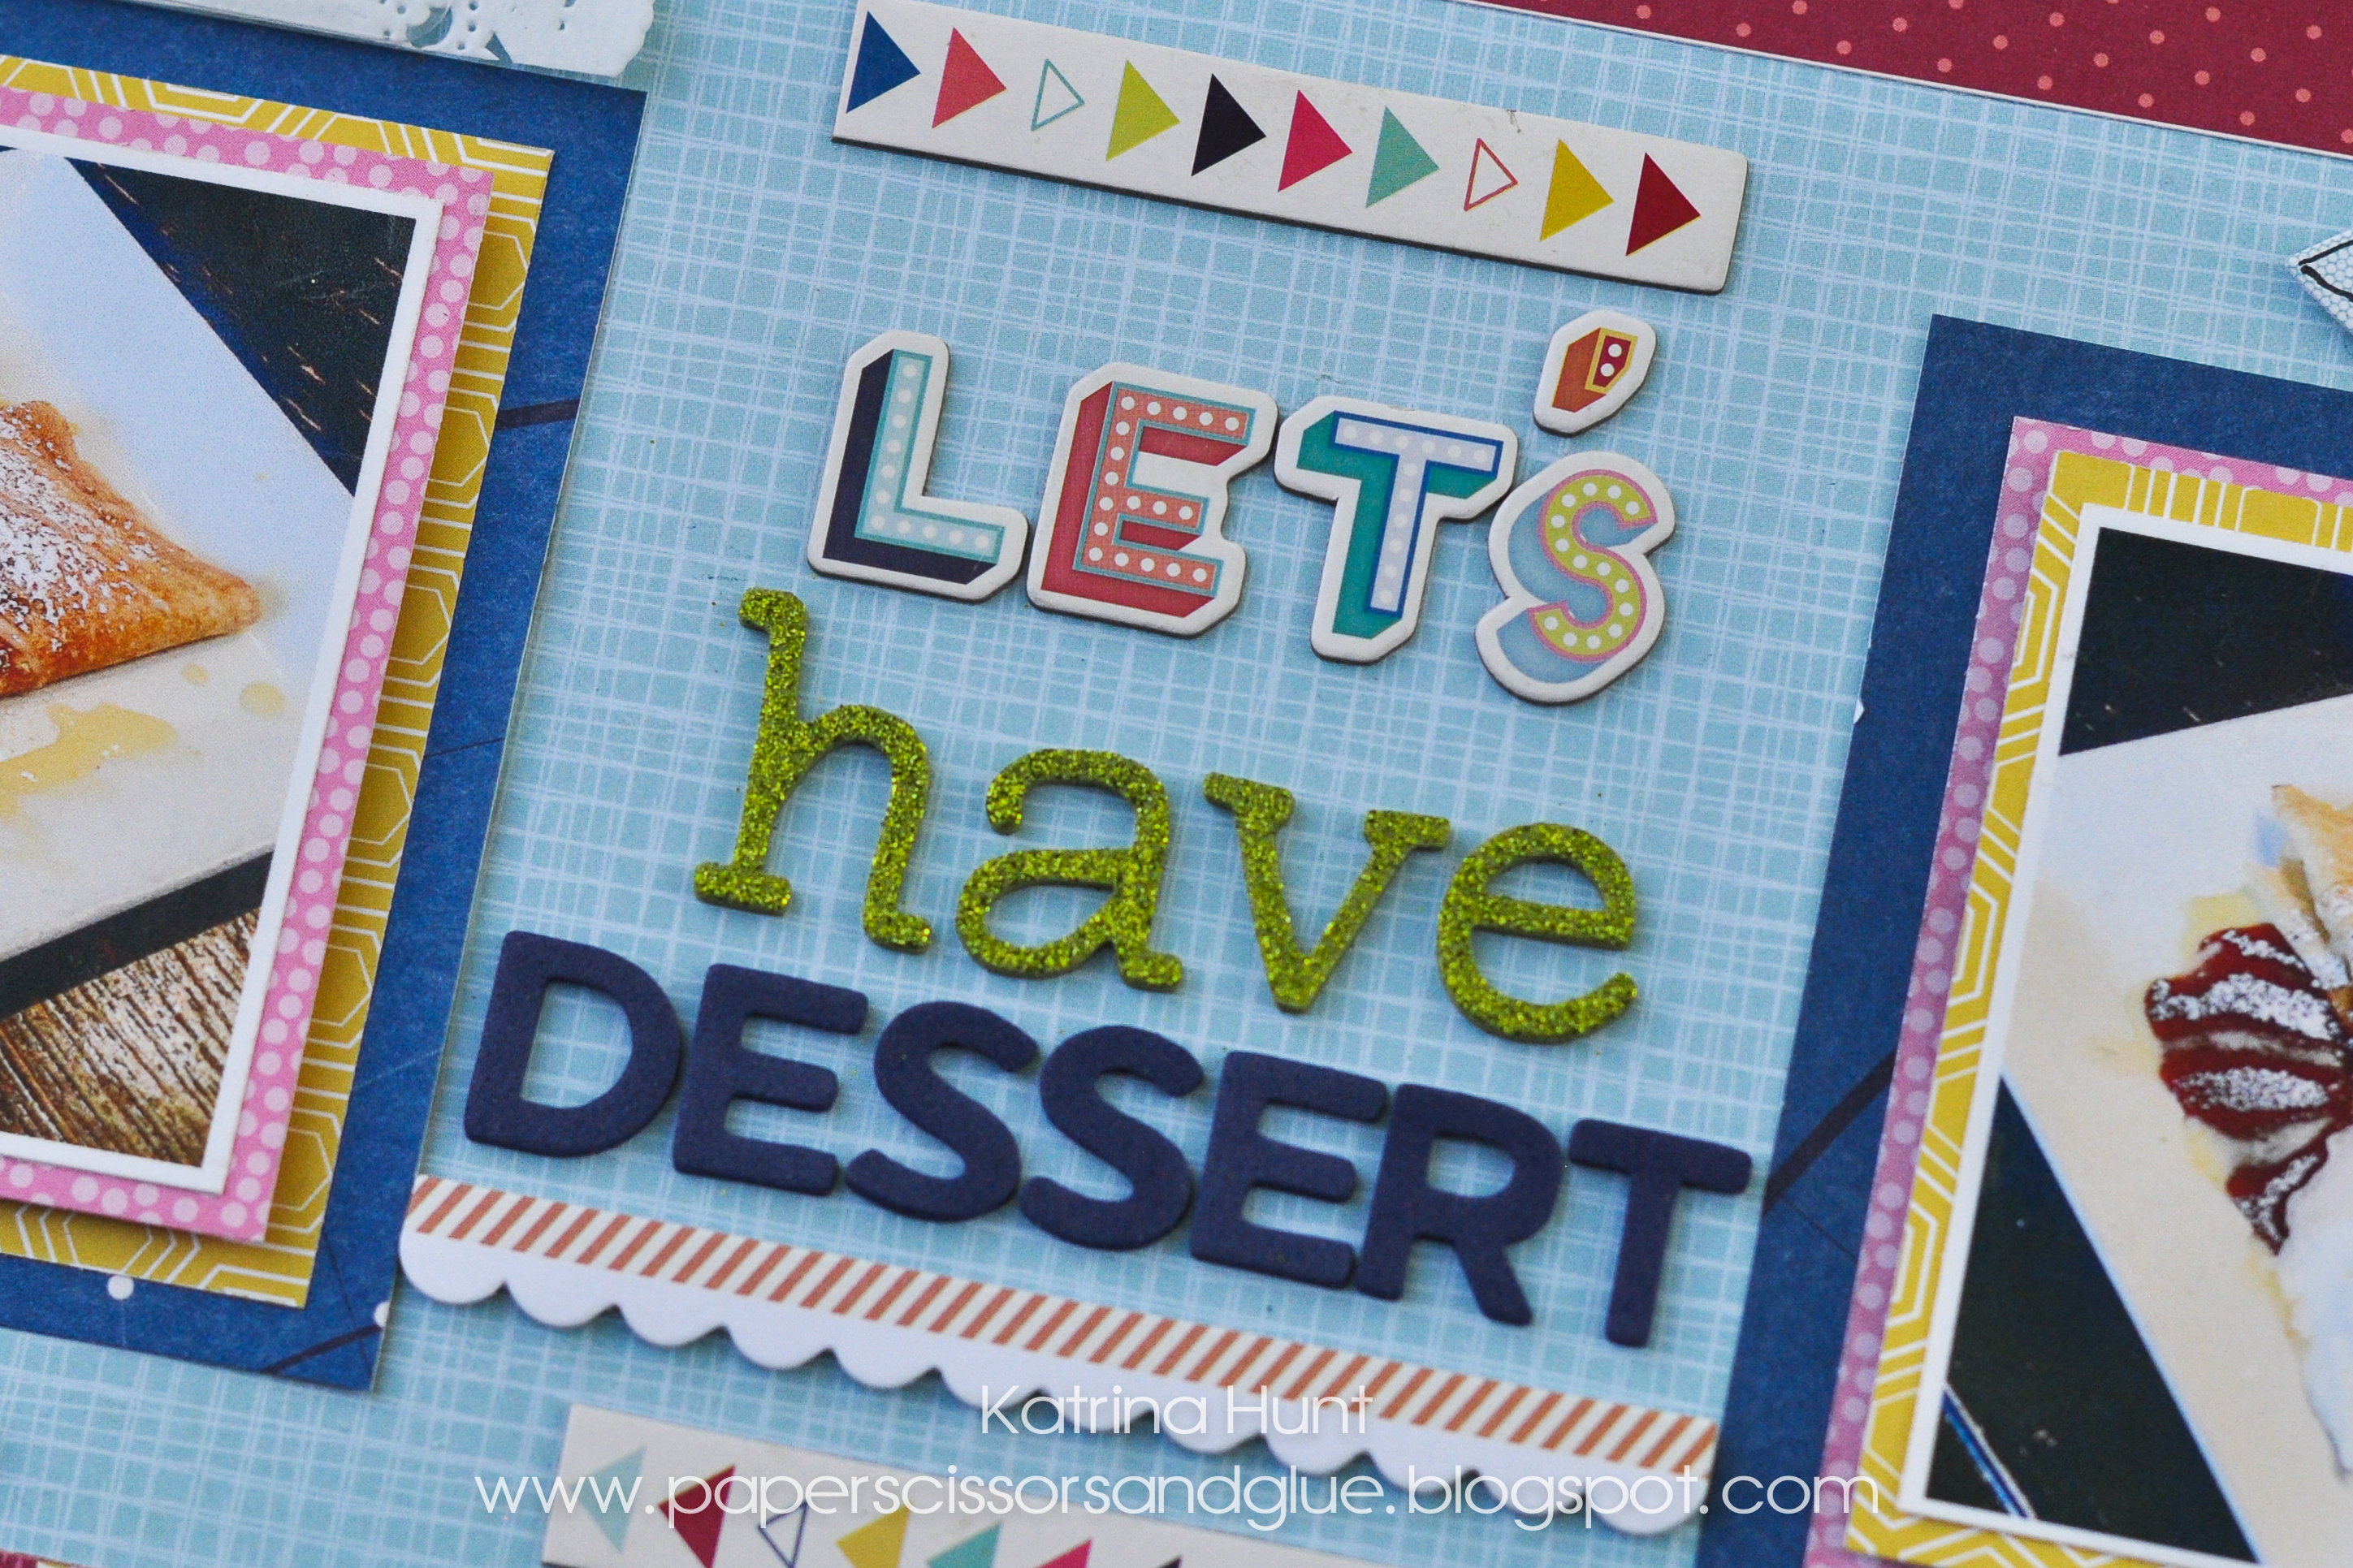 Let's_Have_Dessert_Scrapbook_Layout_Shimelle_Katrina_Hunt_1000Signed-4